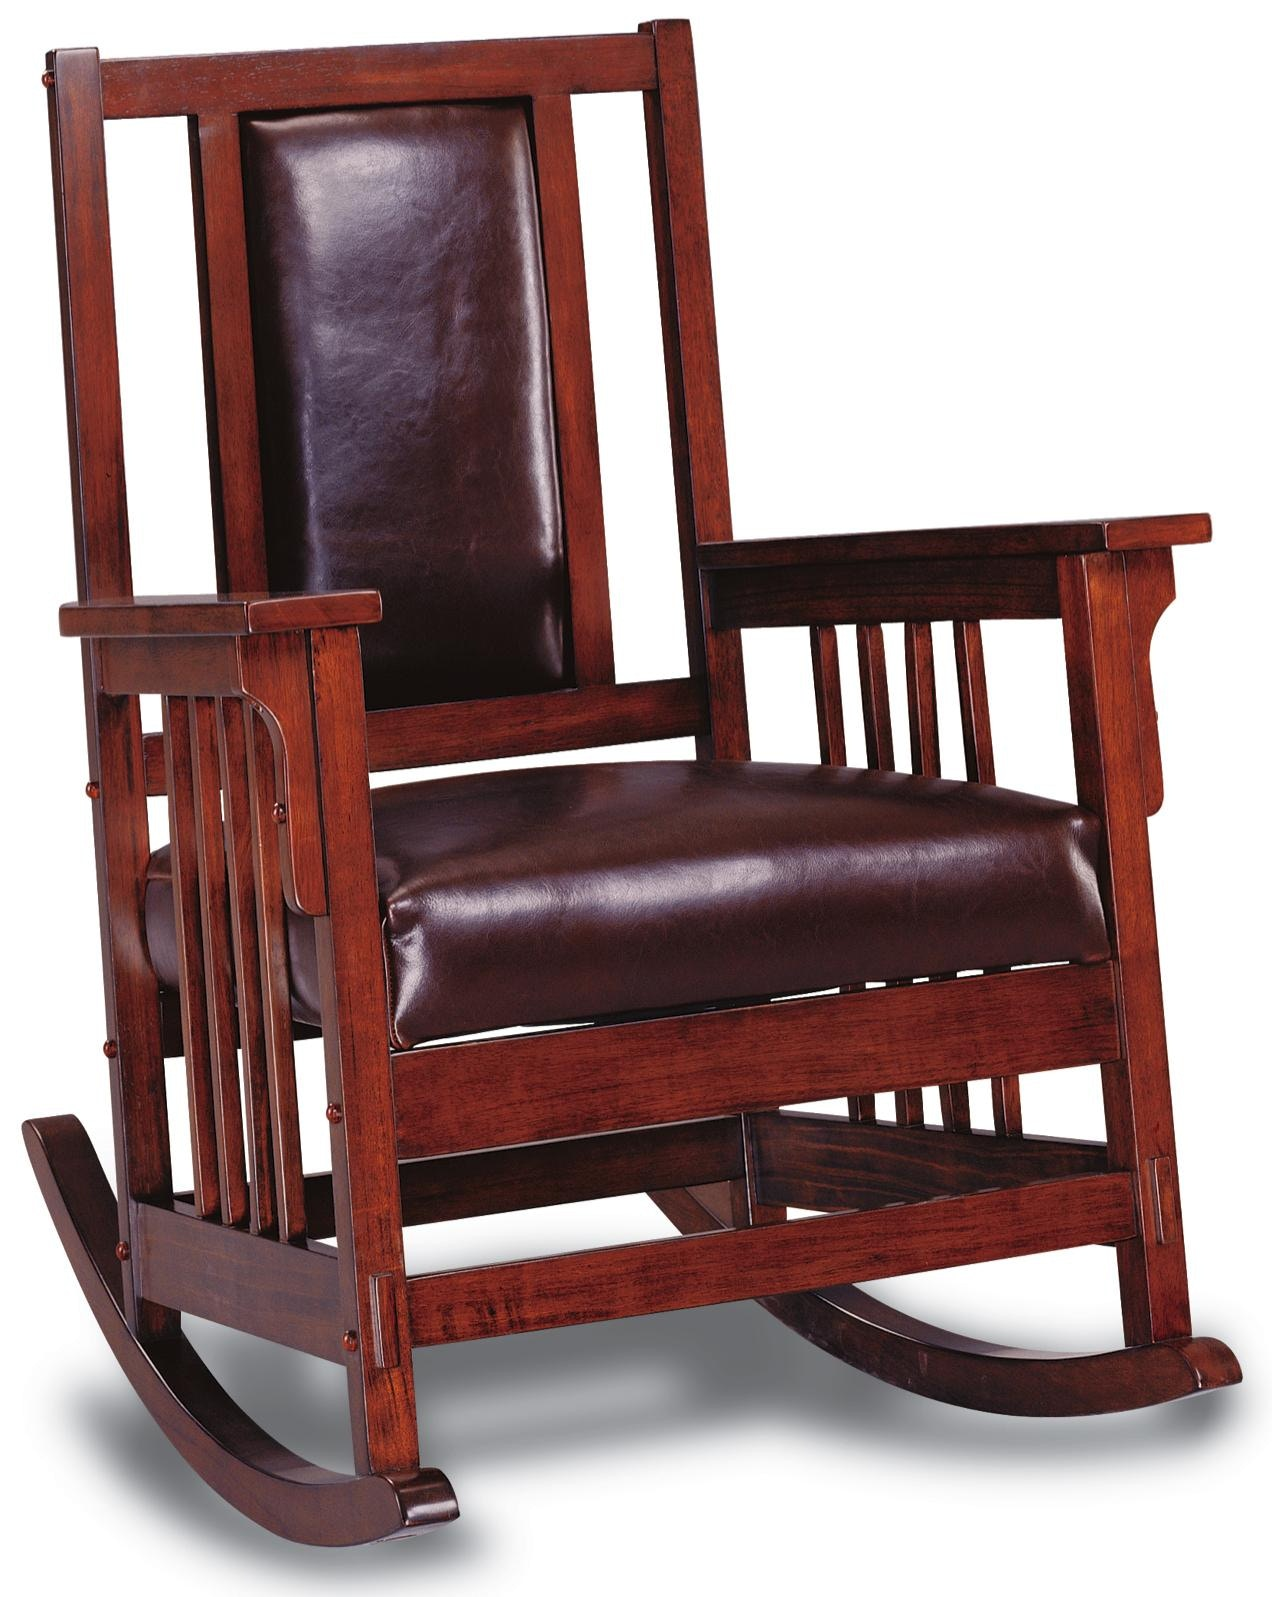 key west chairs swivel chair round base coaster living room rocking 600058 royal furniture